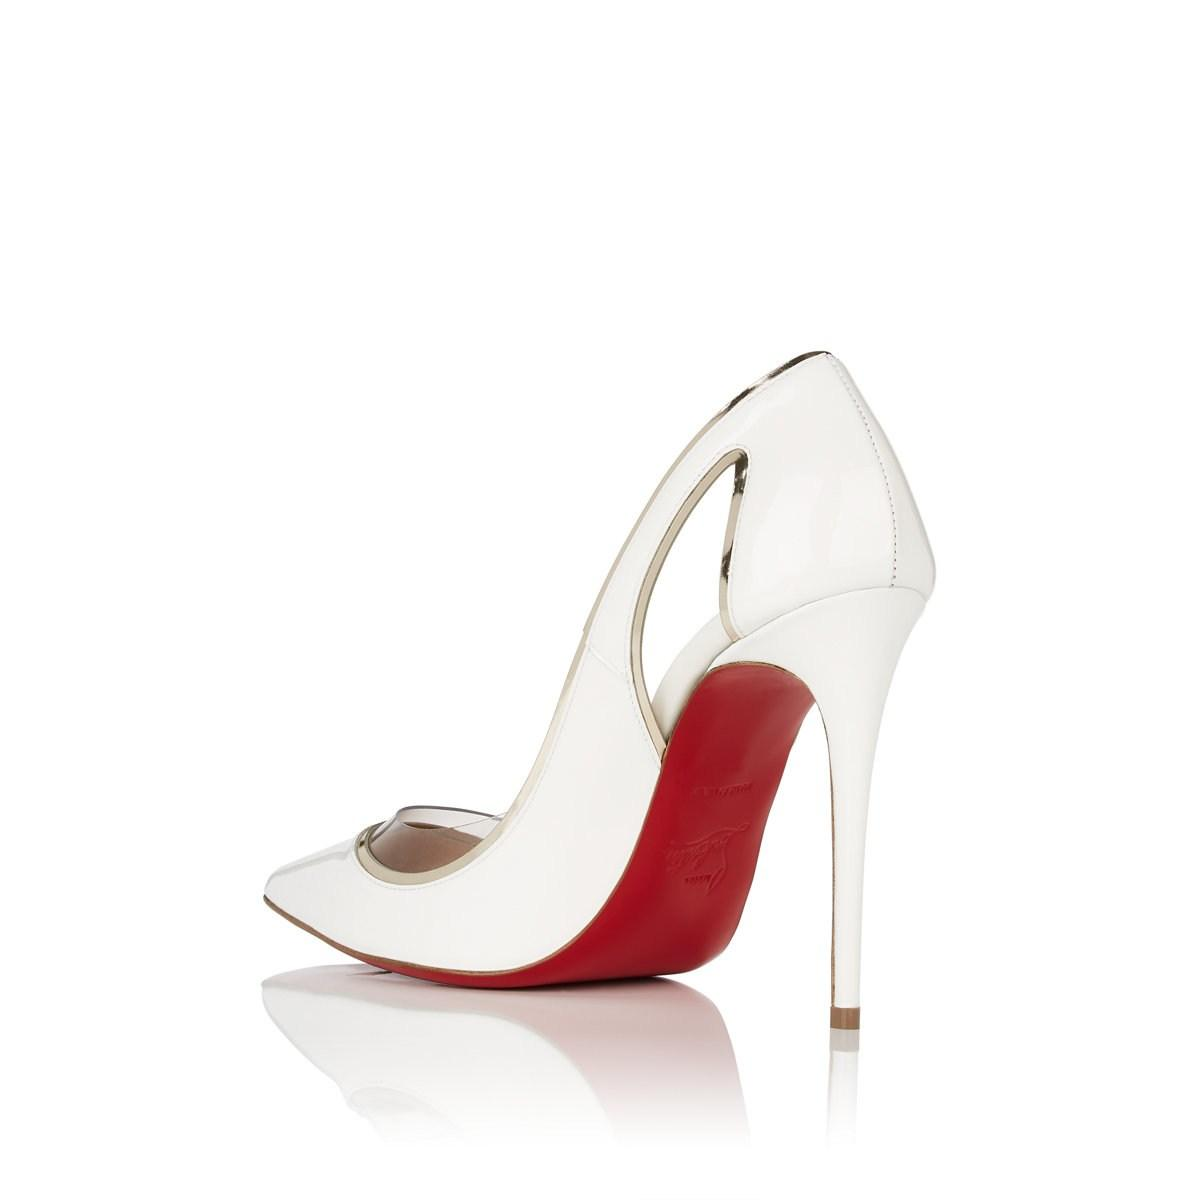 ed1f9afeaf3 Christian Louboutin - Multicolor Cosmo 554 Patent Leather   Pvc Pumps -  Lyst. View fullscreen